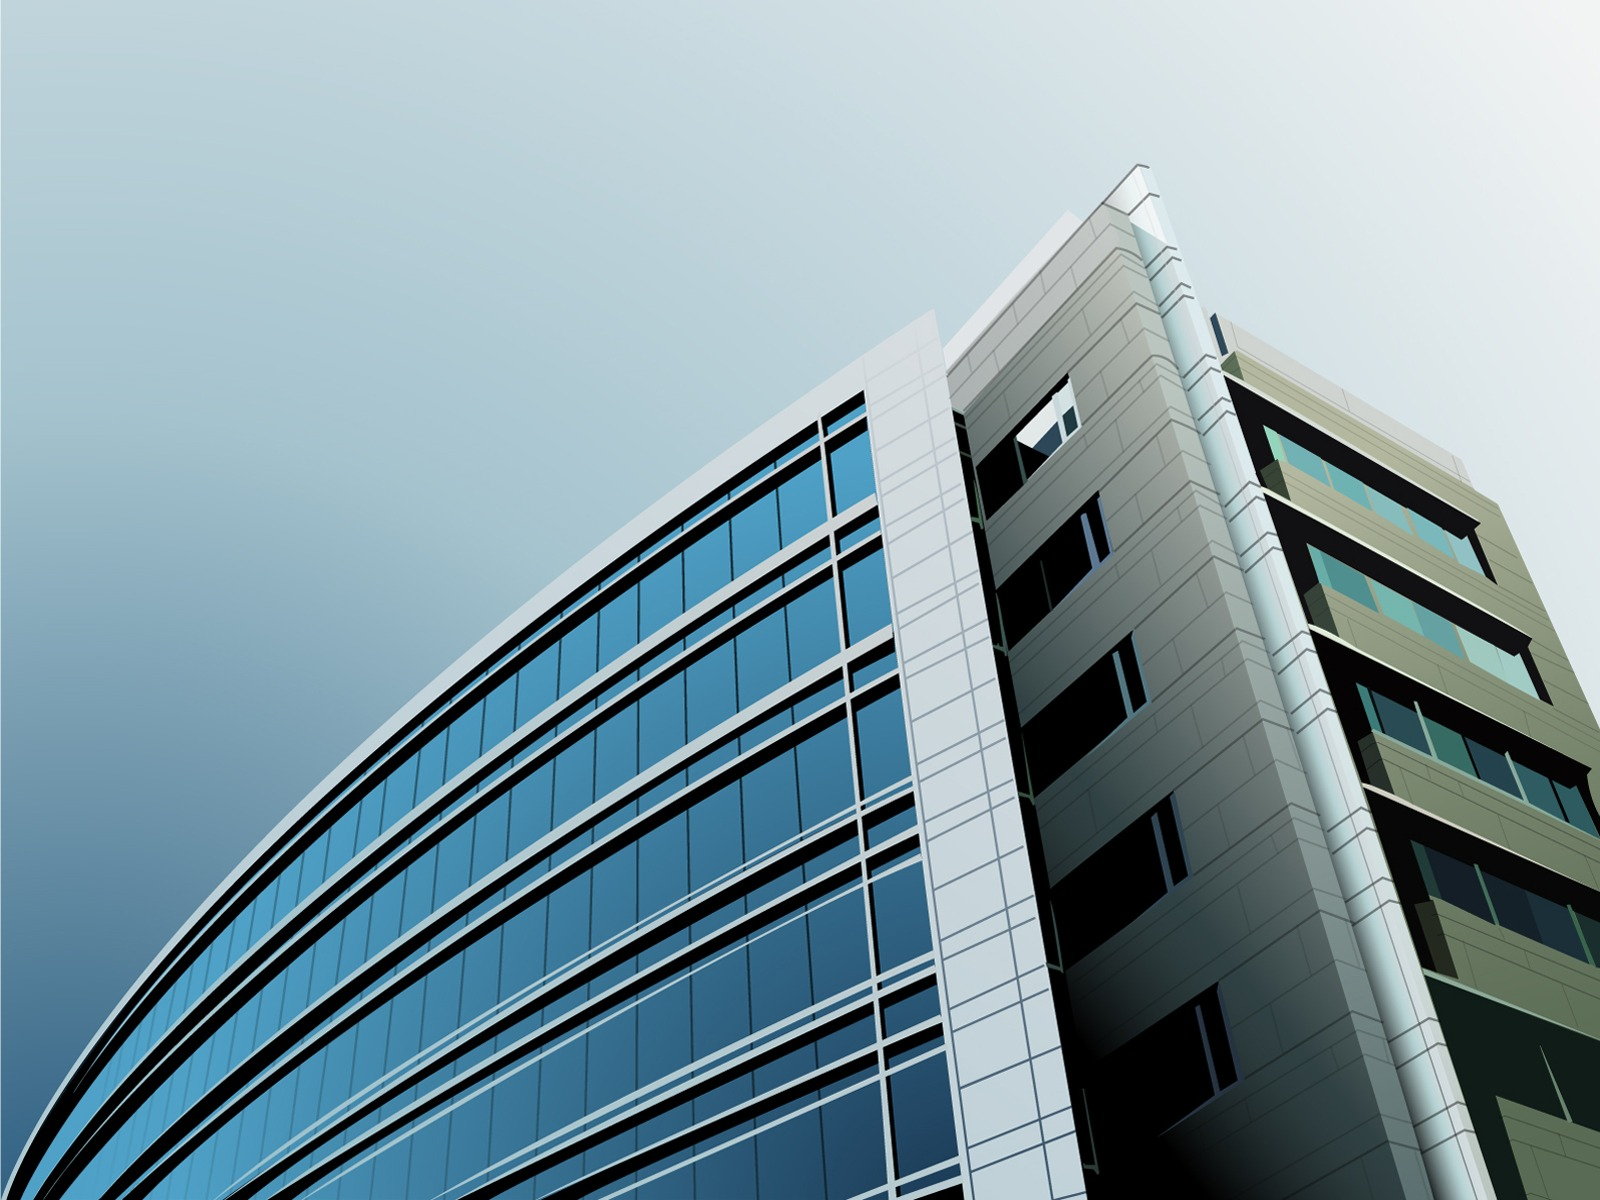 building and sky wallpaper abstract 3d wallpapers in jpg format